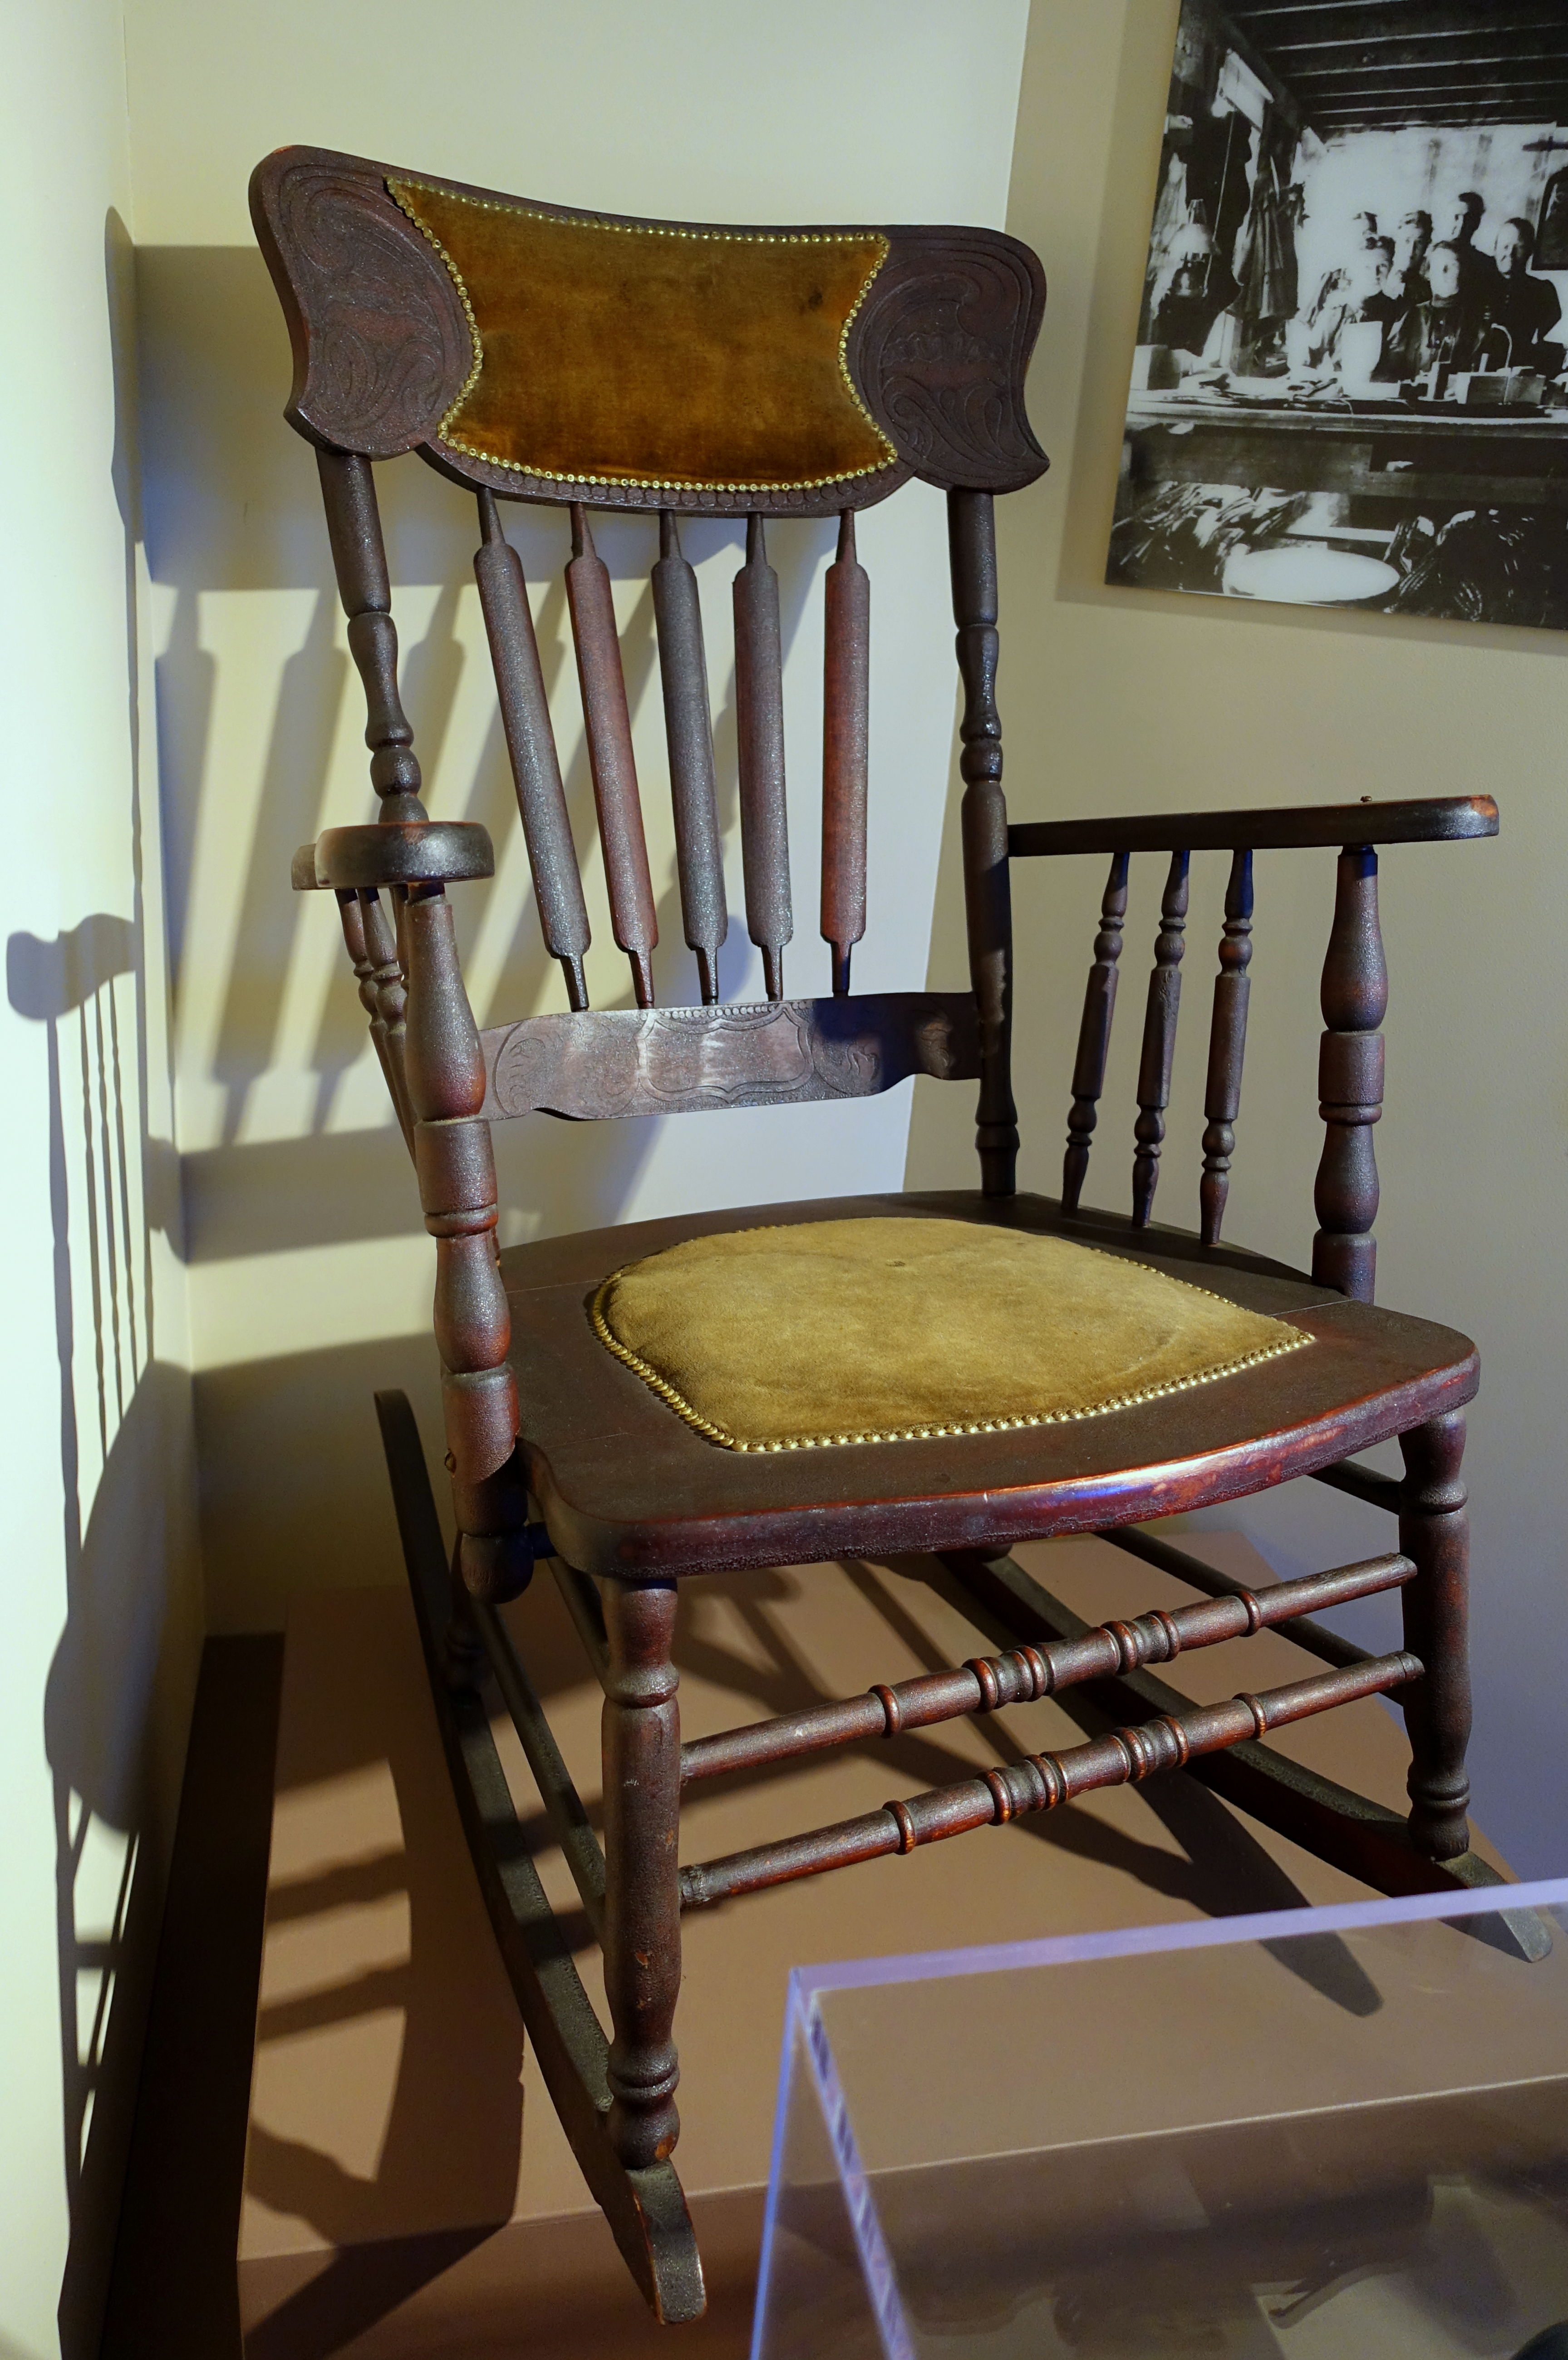 File:Rocking Chair, Allen Chair Company, Concord Junction, 1910 1930,